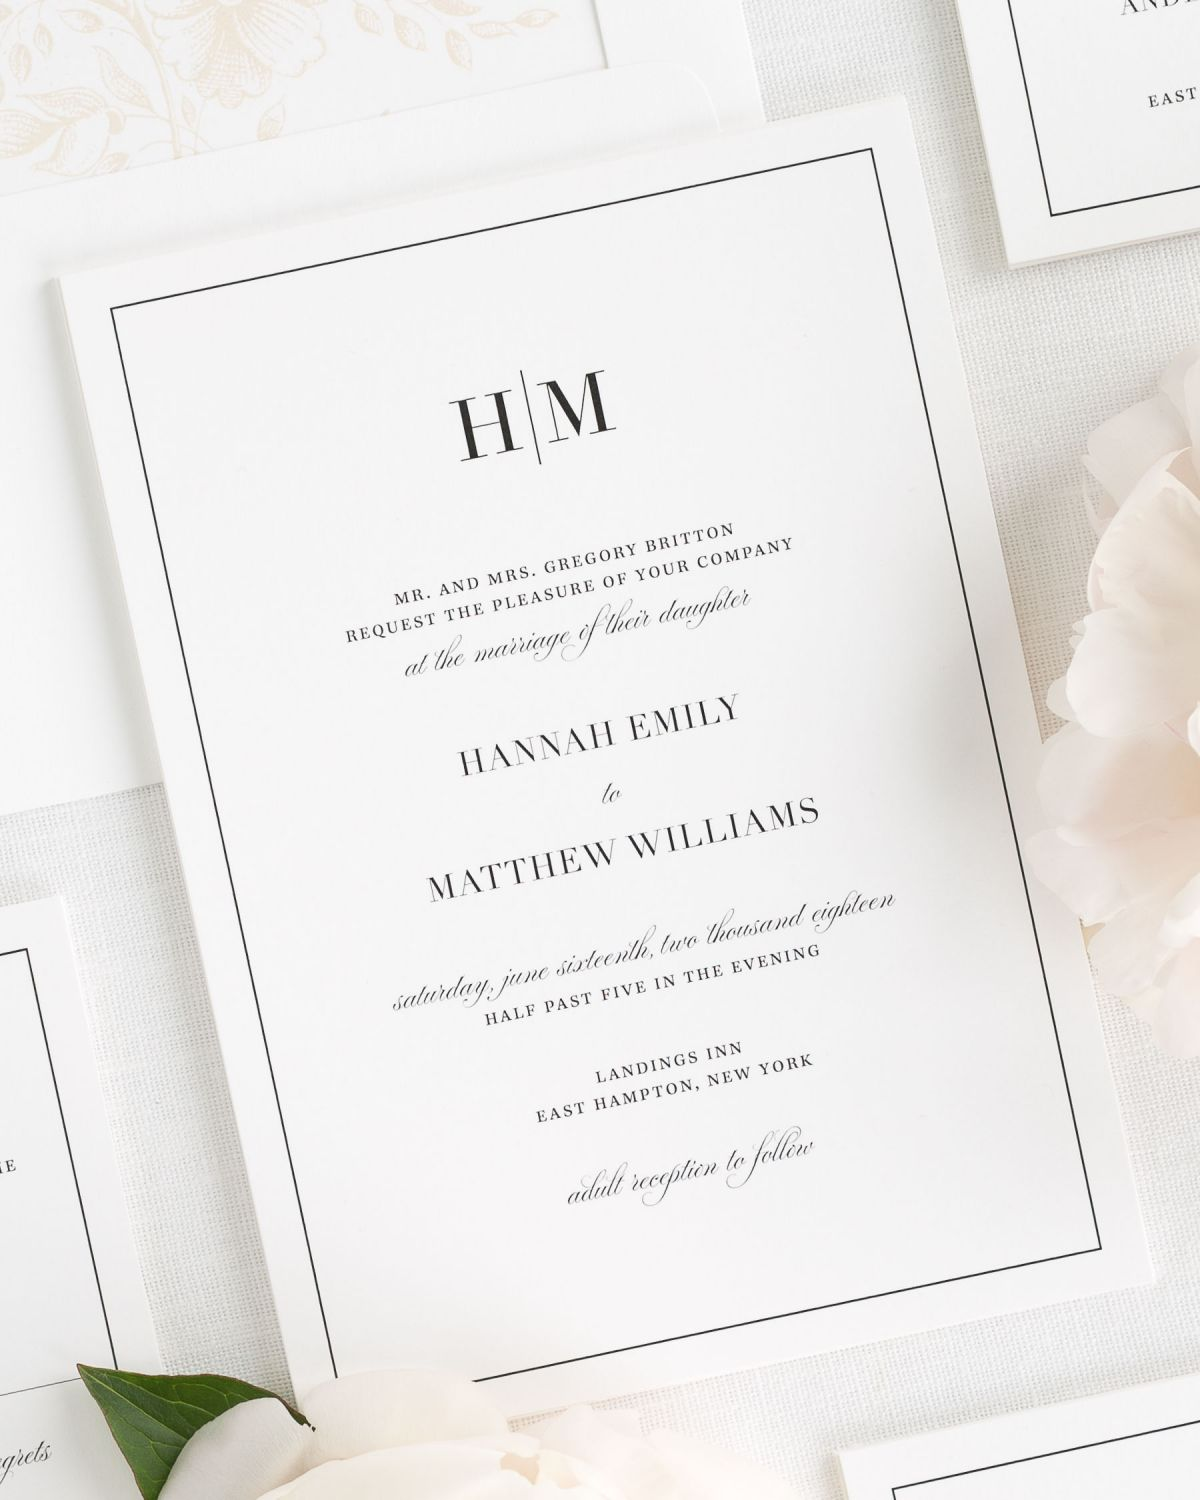 Glam Monogram Wedding Invitations  Wedding Invitations By. Make Your Own Lace Wedding Invitations. Wedding Designers Cape Town. Cheap Wedding Invitation Ideas. Wedding Invitations Traditional. Wedding Planners Kentucky. Wedding Suits On Ebay. Wedding Bride Card. Wedding Favours Kent